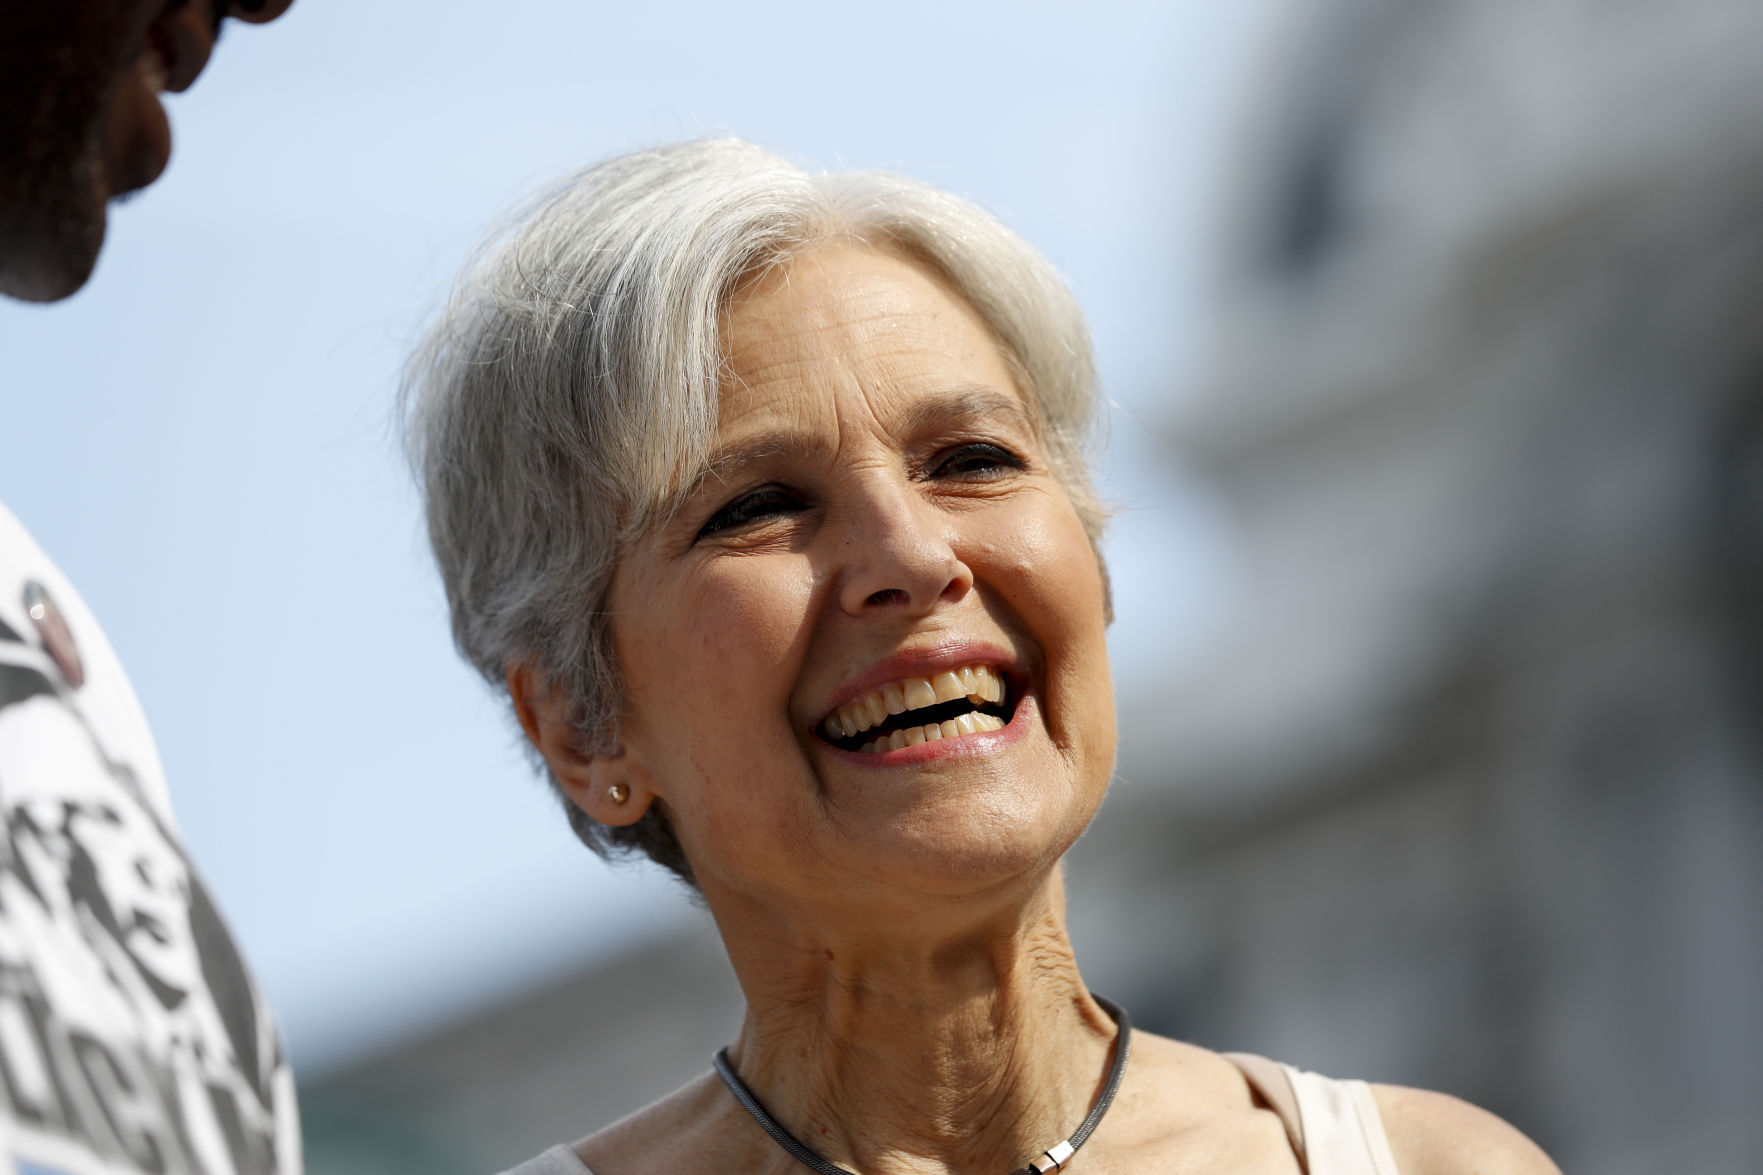 Green Party's Jill Stein raises millions for election recount